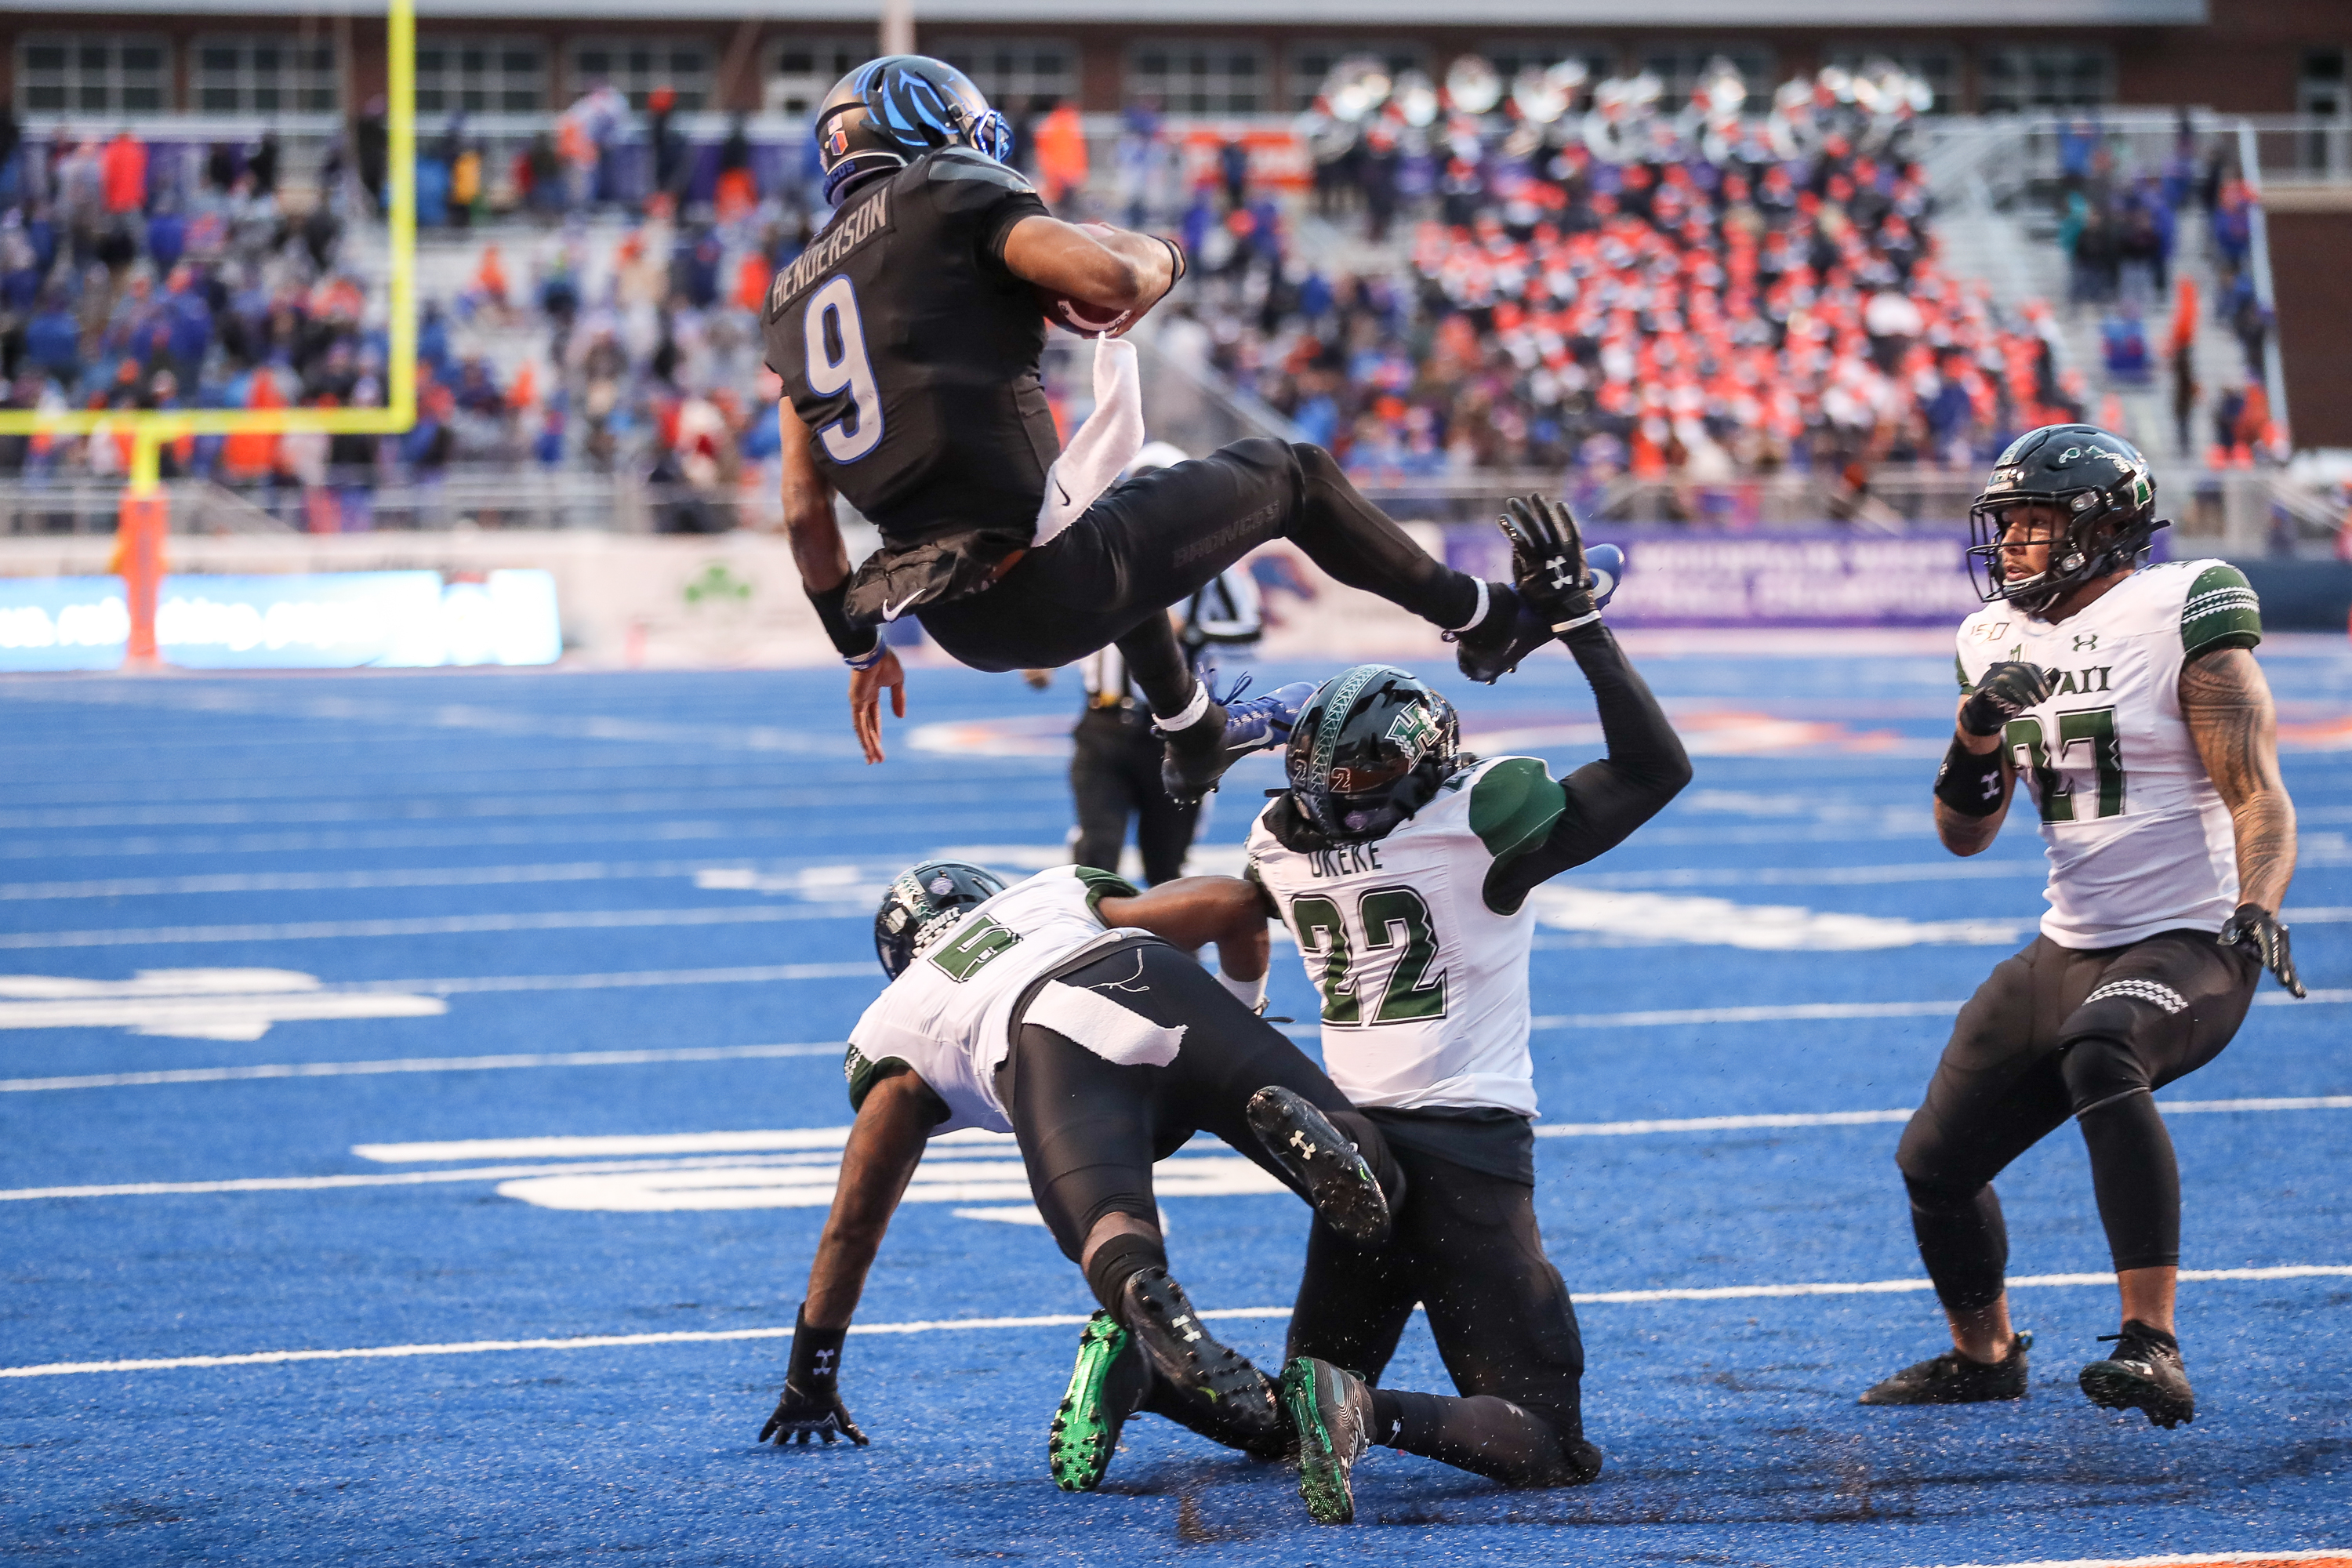 Mountain West Championship - Hawaii v Boise State